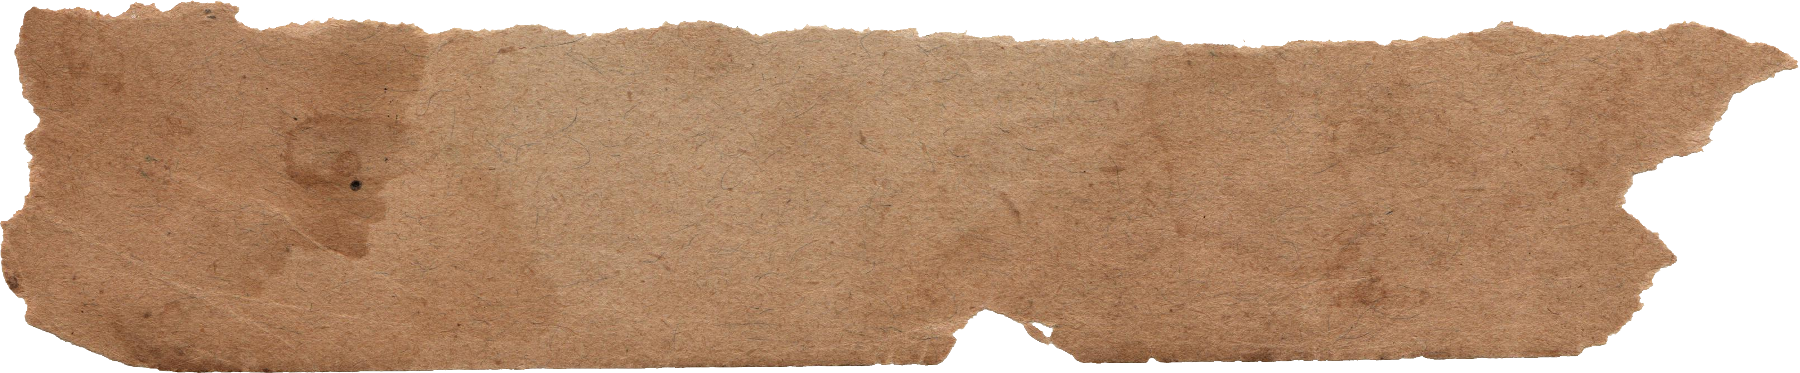 torn banner png